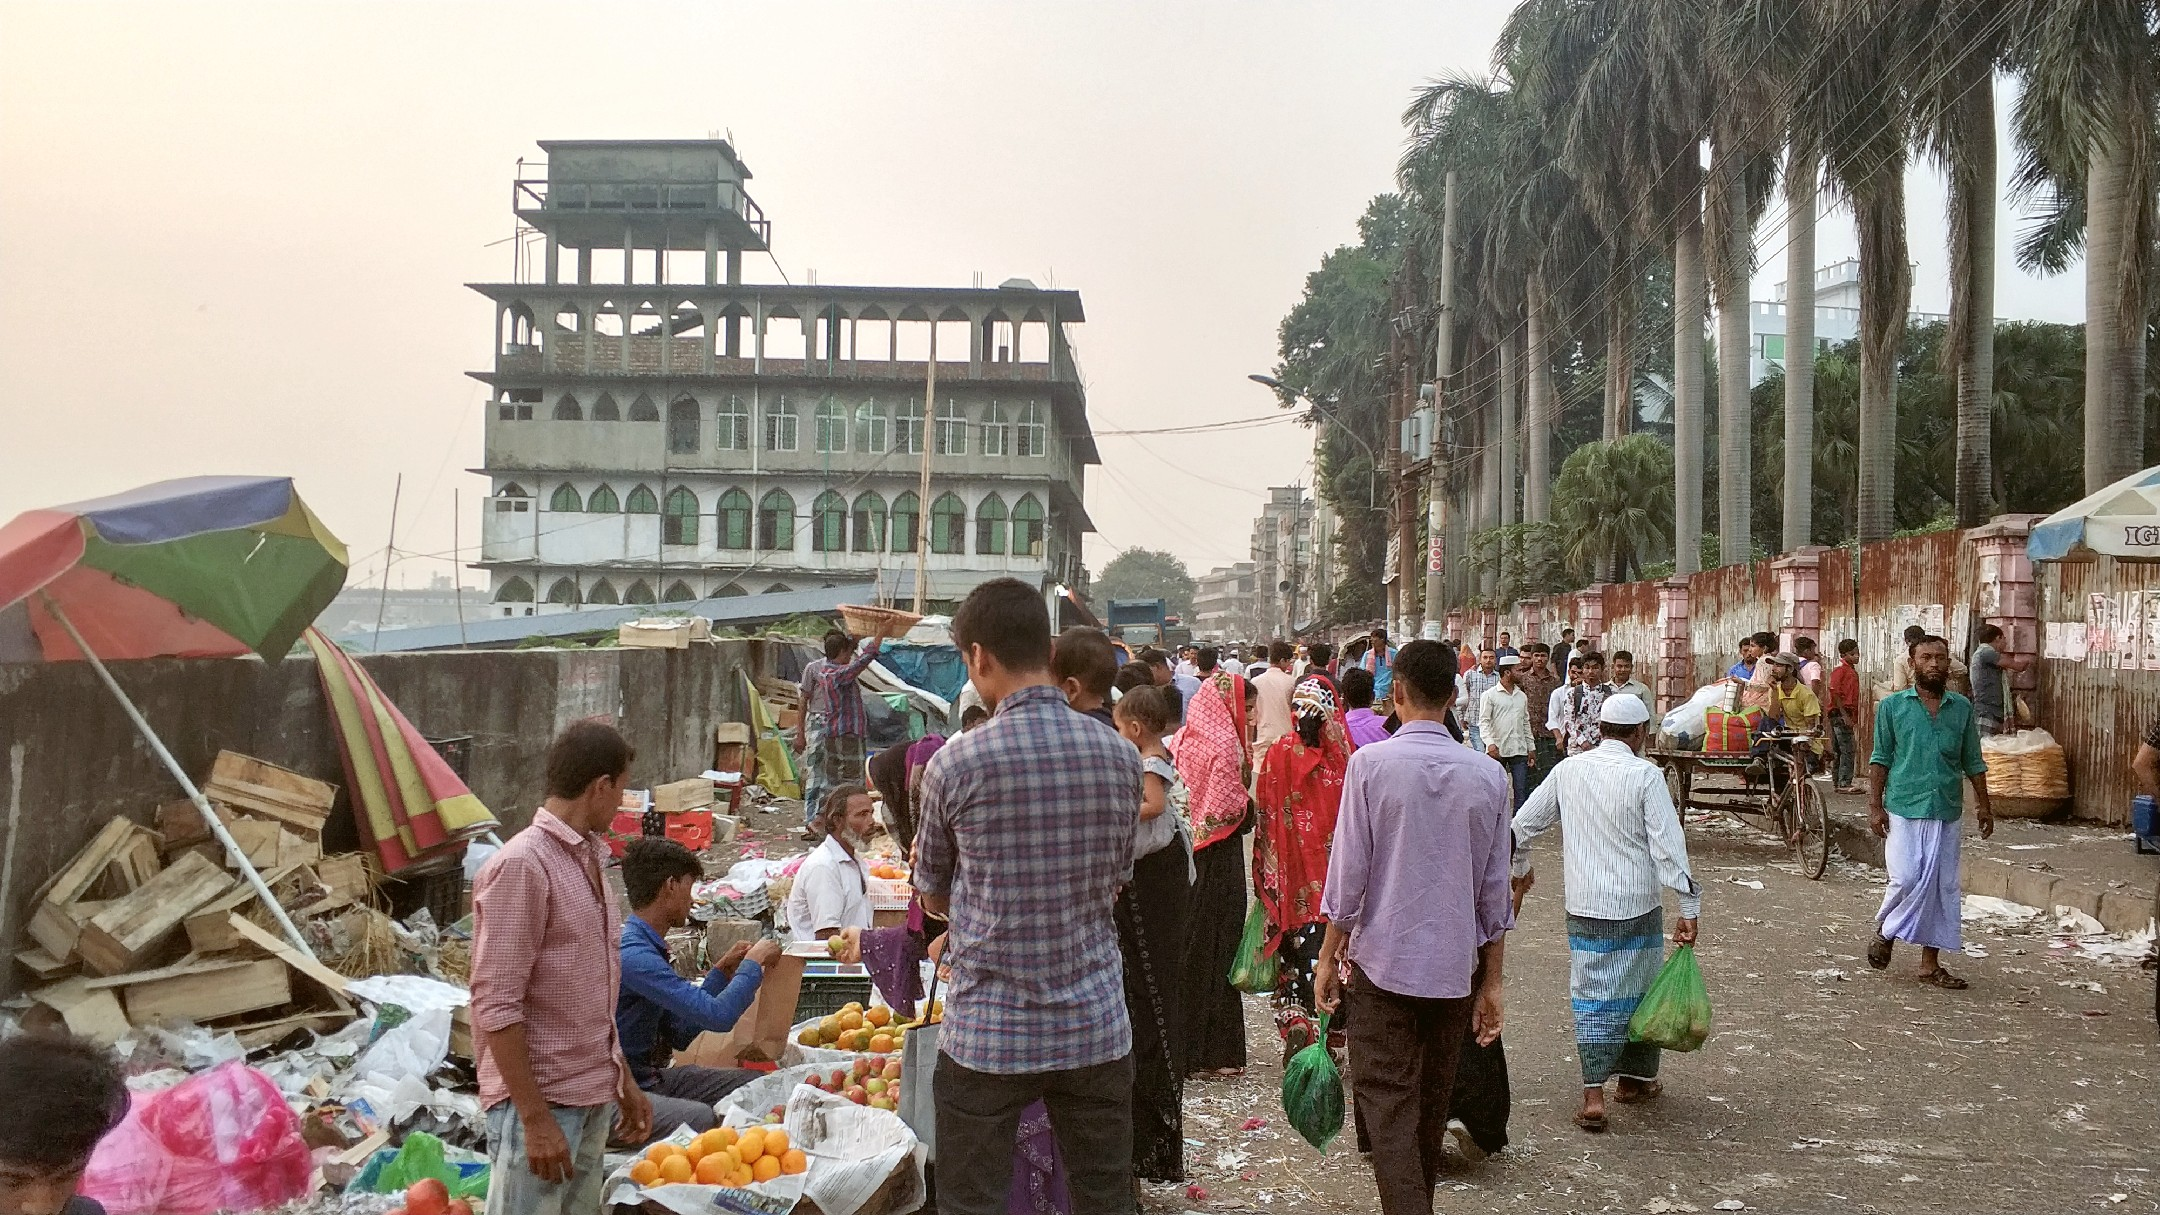 Fruit sellers tending to customers along the trash filled roads near the Buriganga River